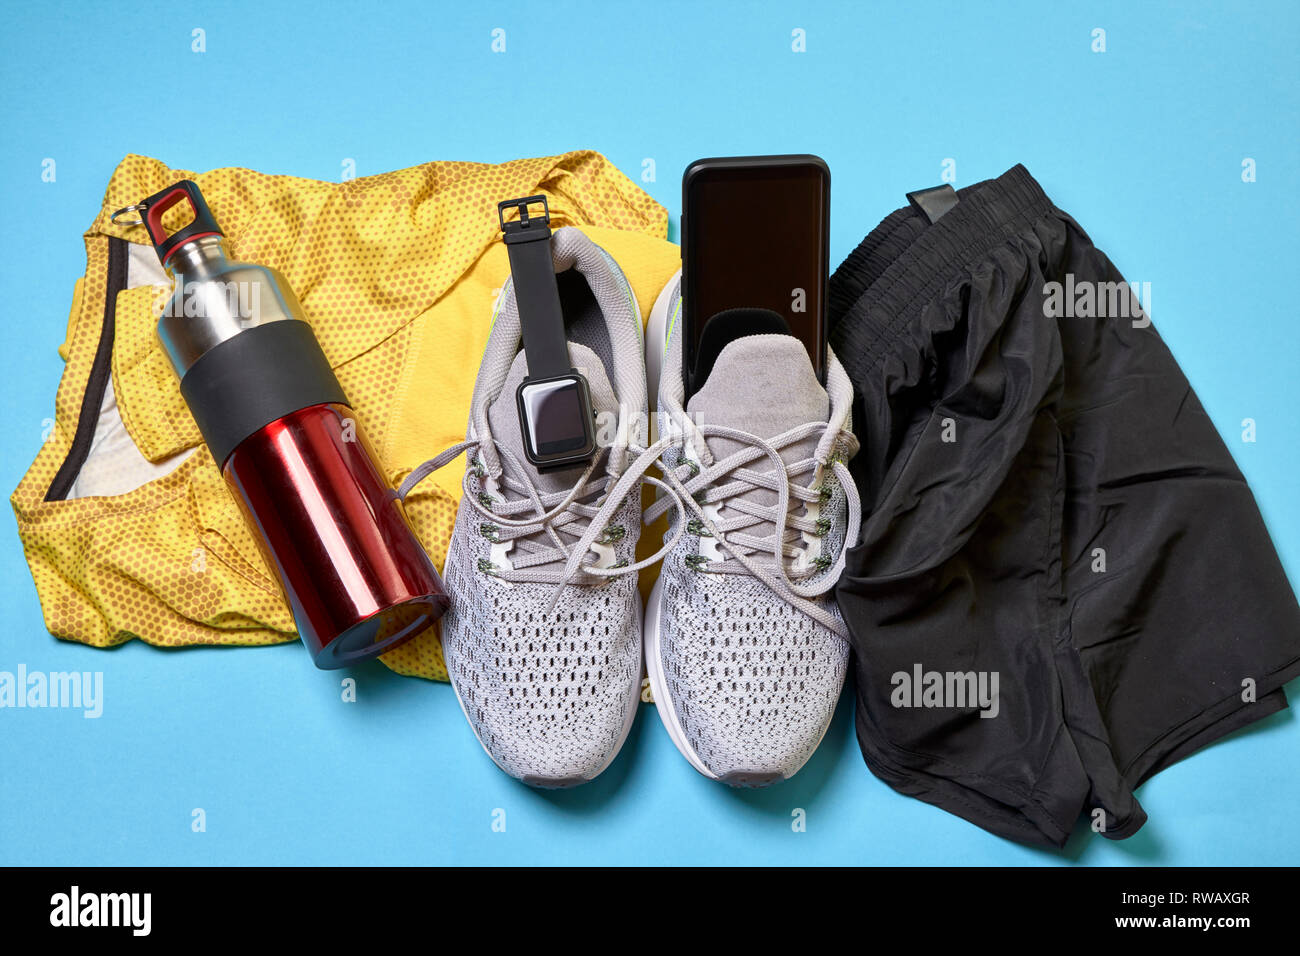 running shoes with a pair of shorts, a yellow shirt and technological accessories on a blue background - Stock Image